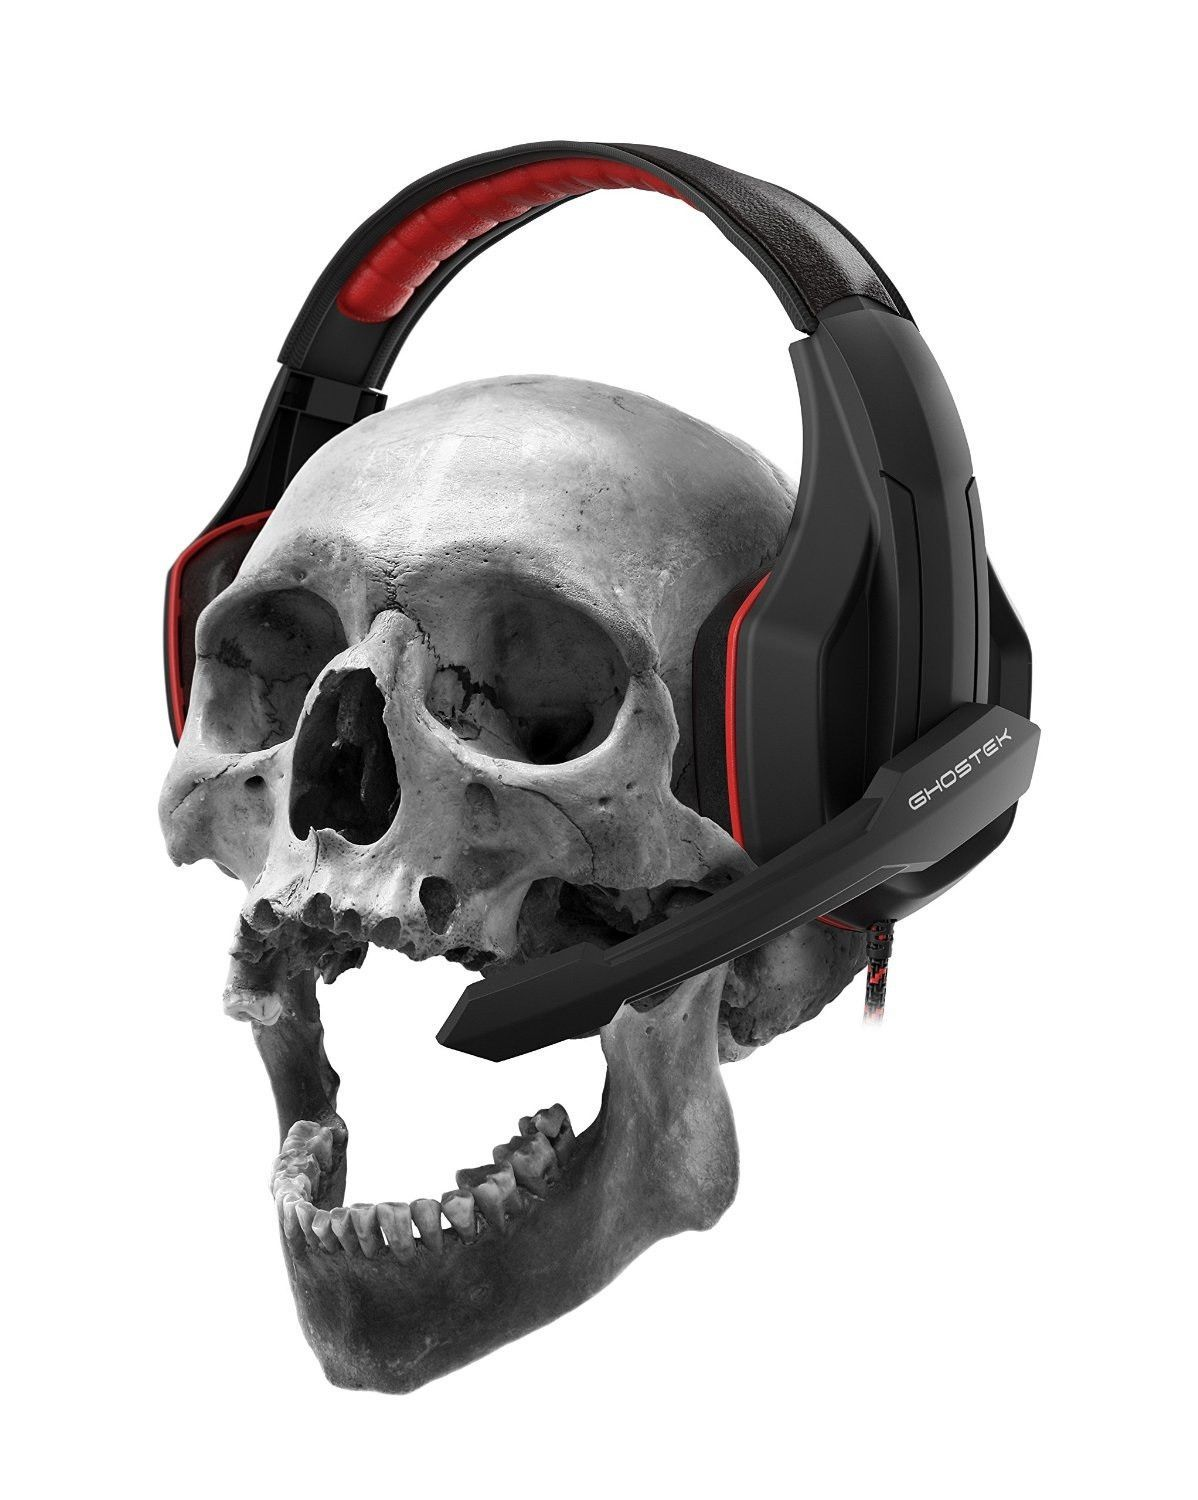 PC Gaming HeadsetGhostek HERO Wired Stereo Headphones with Microphone